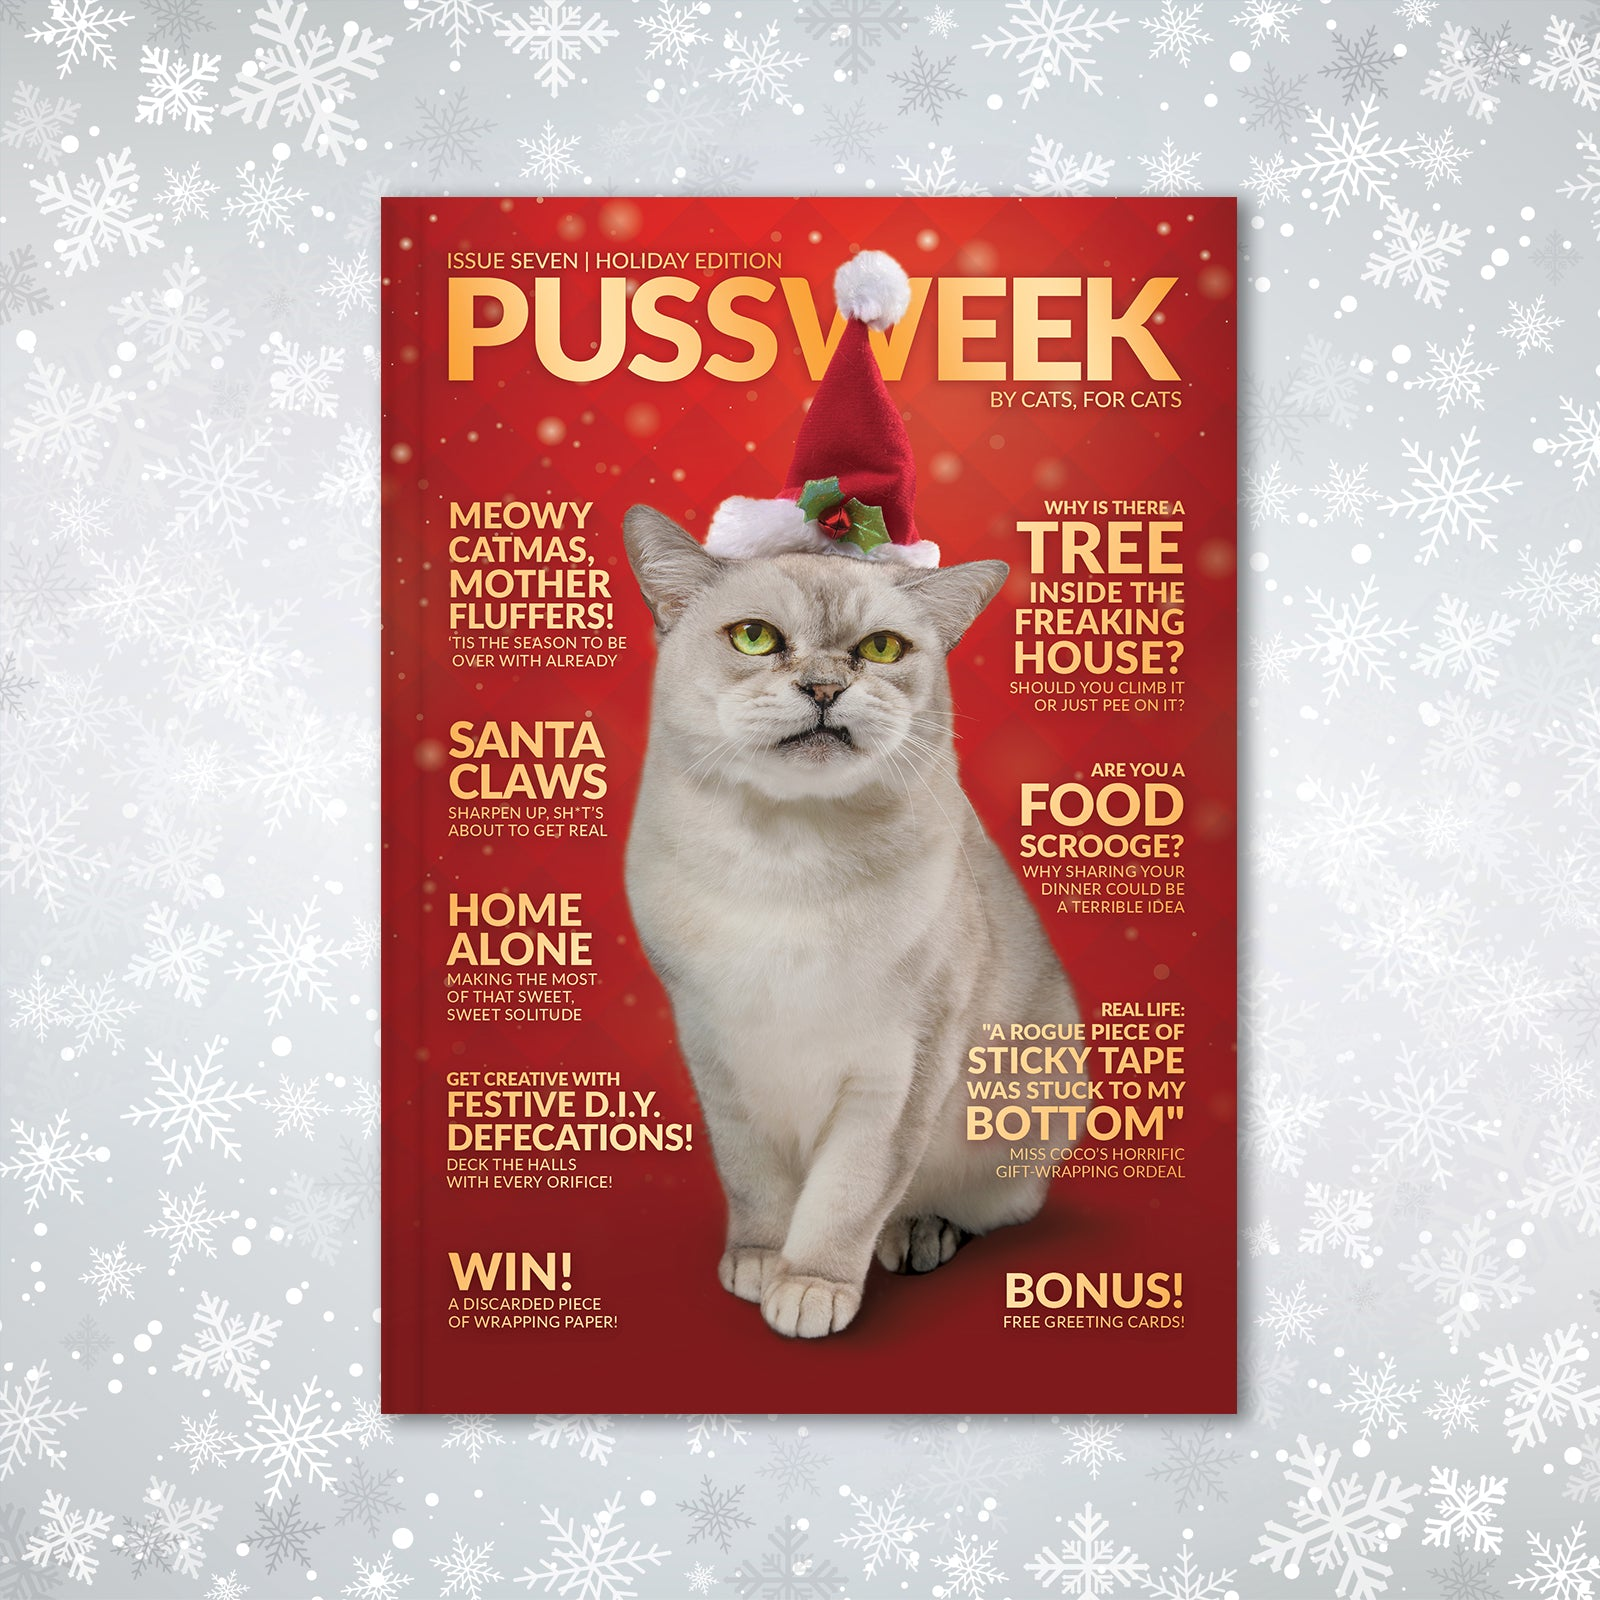 PUSSWEEK Holiday Edition Pre-Order